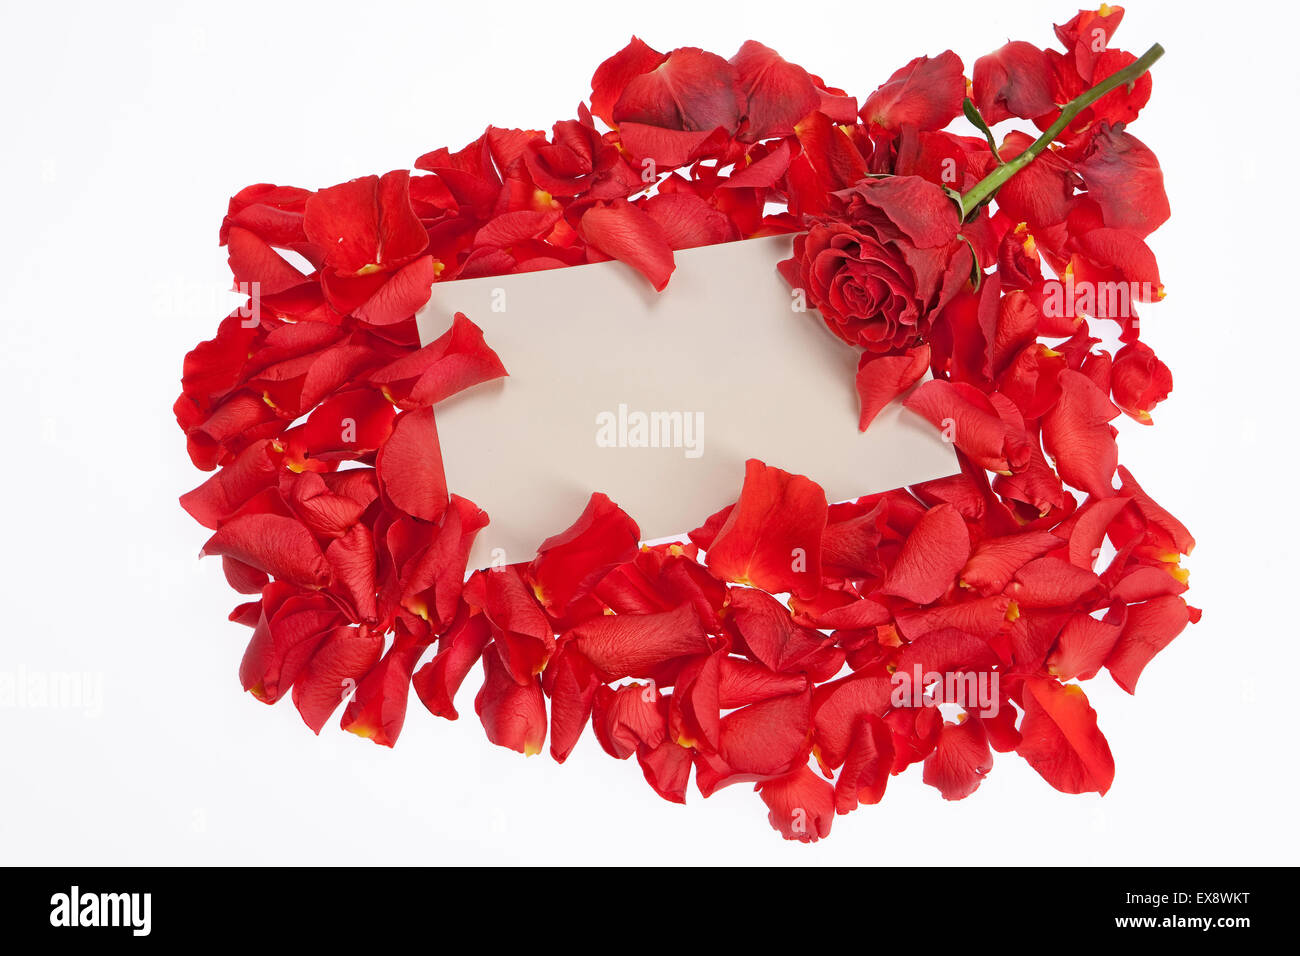 rose petal red flower nobody group objects backgrounds large head ...